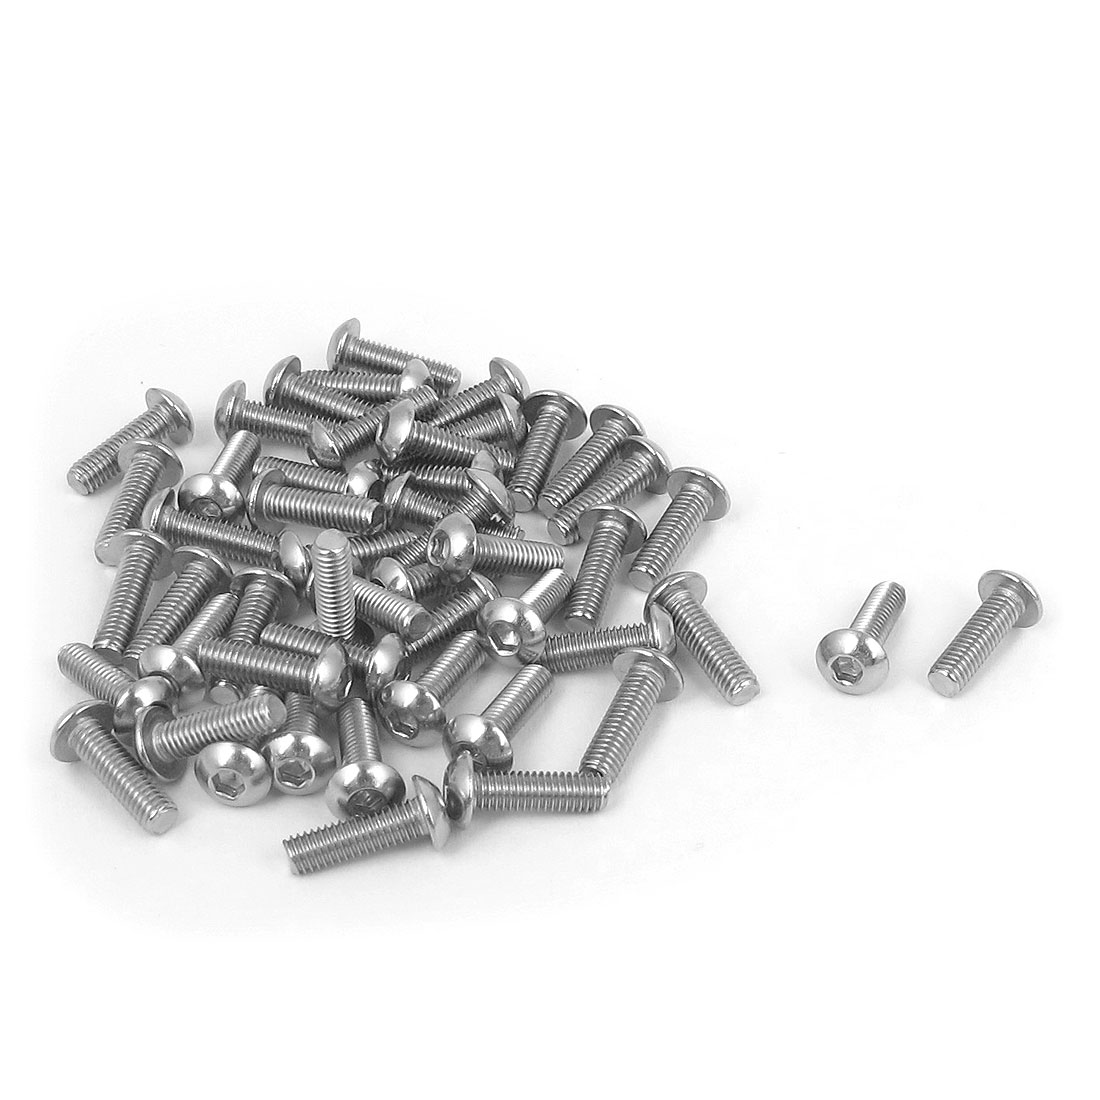 M3 x 10mm 304 Stainless Steel Hex Socket Machine Countersunk Round Head Screw Bolts 50PCS